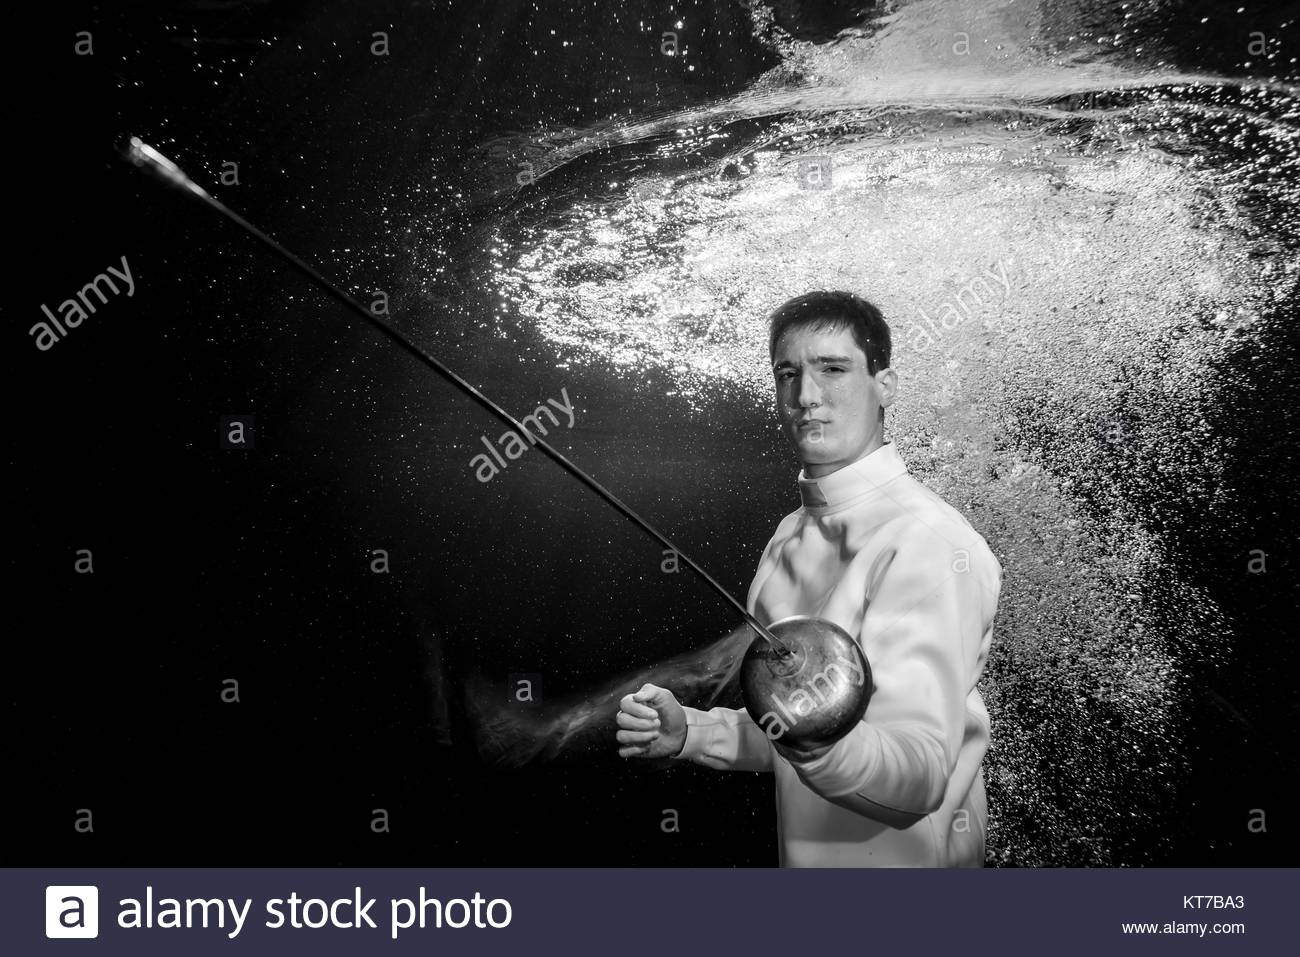 Epee Fencing Black And White Stock Photos Amp Images Alamy